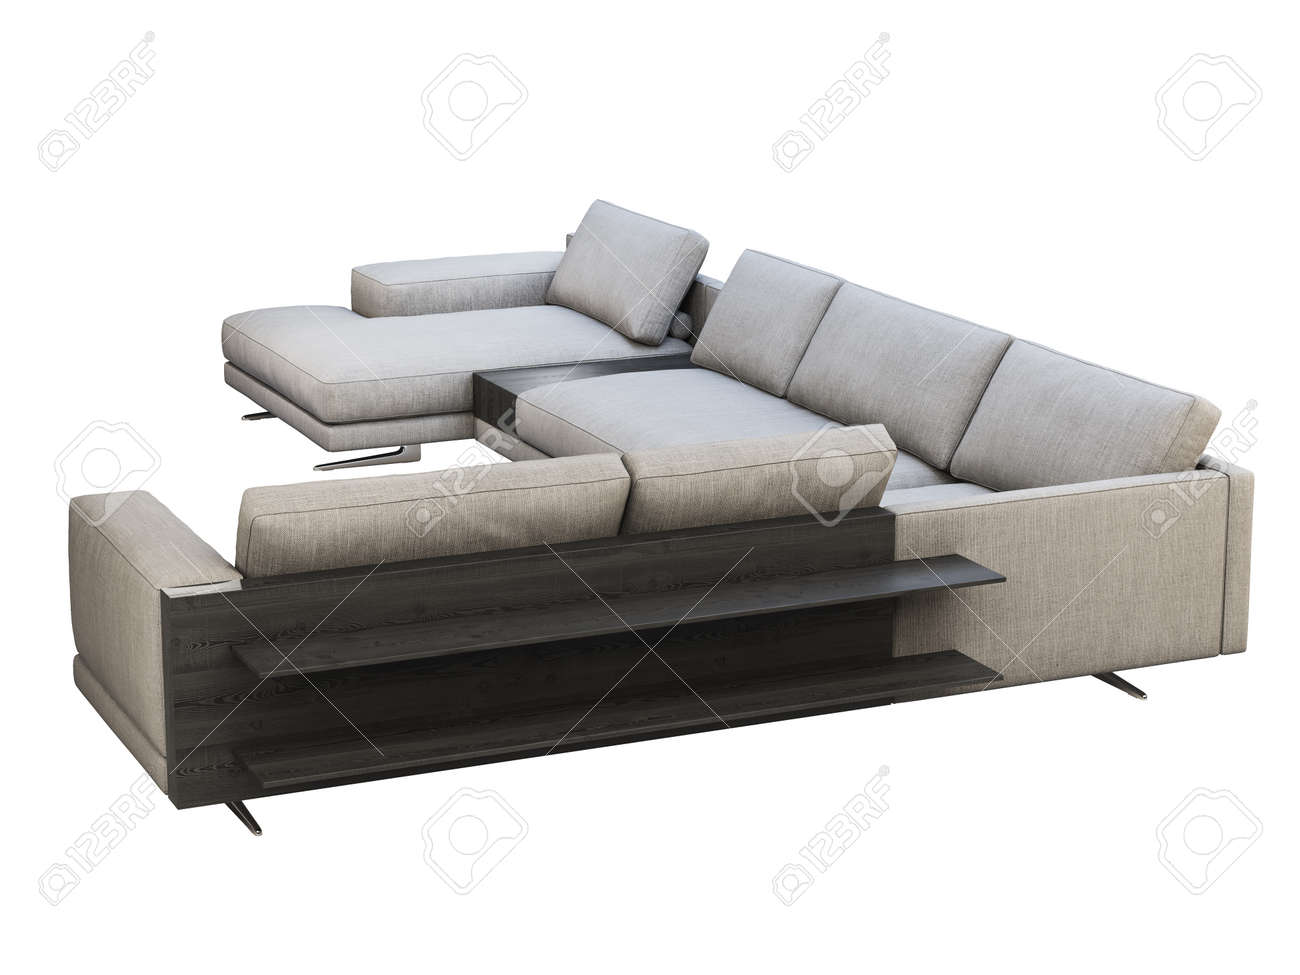 Modern Gray Fabric Corner Sofa With Chaise Lounge Textile Upholstery Stock Photo Picture And Royalty Free Image Image 138174992